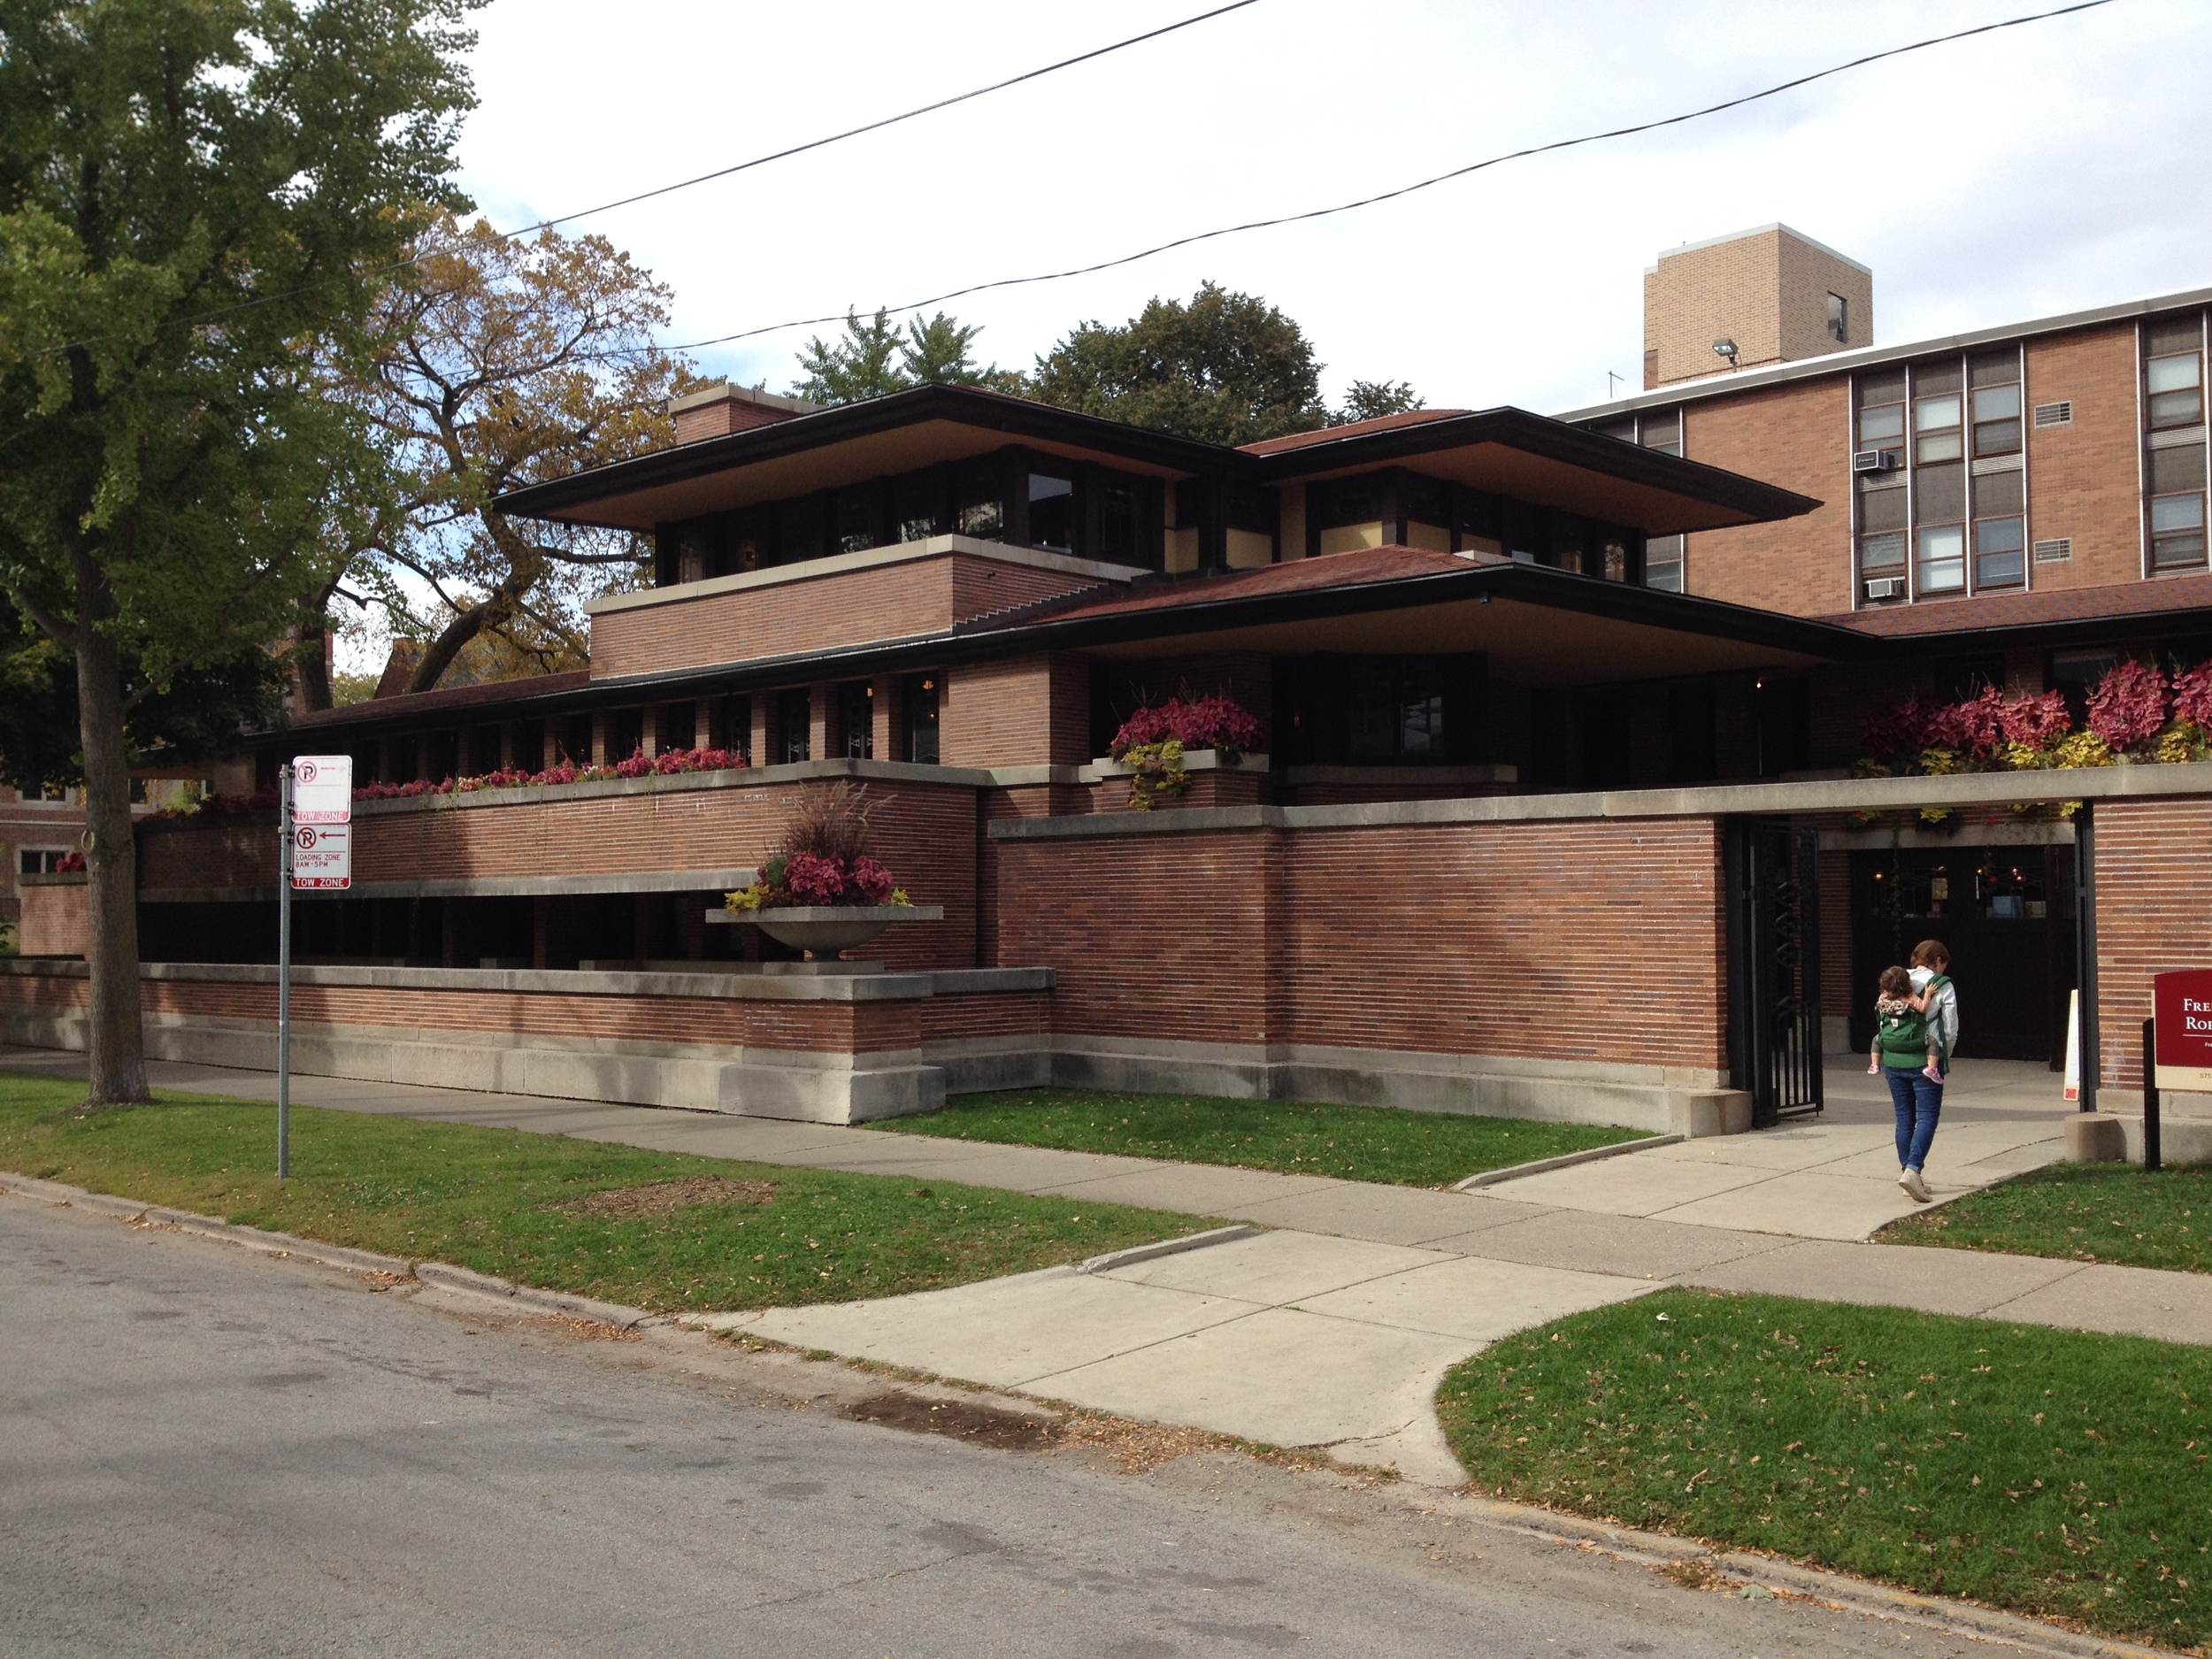 """One of Frank's most defining design traits was that he designed buildings to reflect their environment. Illinois is a """"plains"""" state, so the Robie house is flat and horizontal, like it's environment. It is much different than the very vertical, boxy, and pointy architecture of Chicago."""